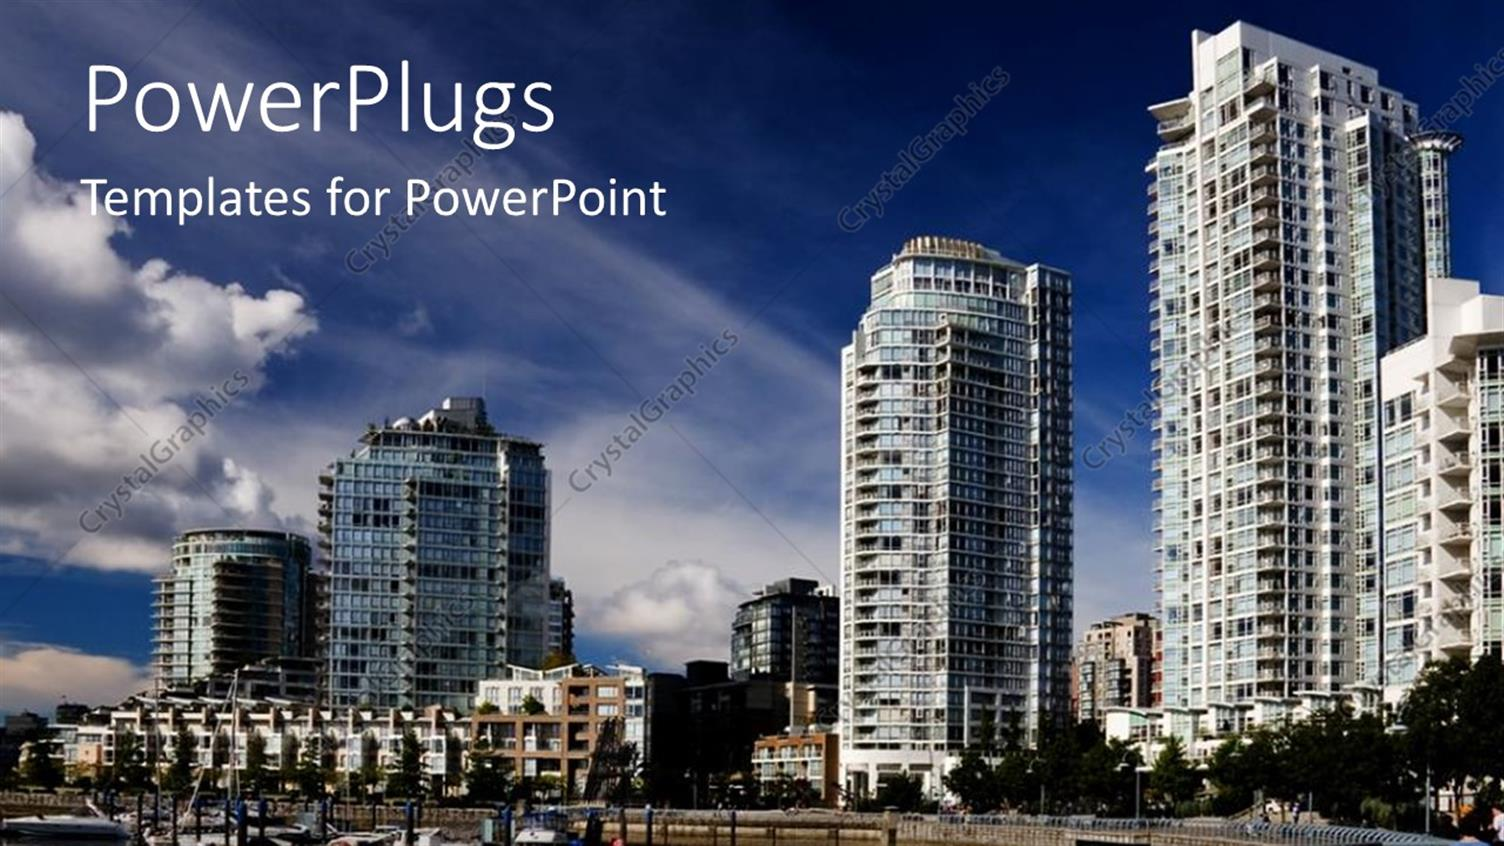 PowerPoint Template Displaying big Buildings in City, Urban Living, City Lifestyle with River Depiction and Apartment Buildings in the Background